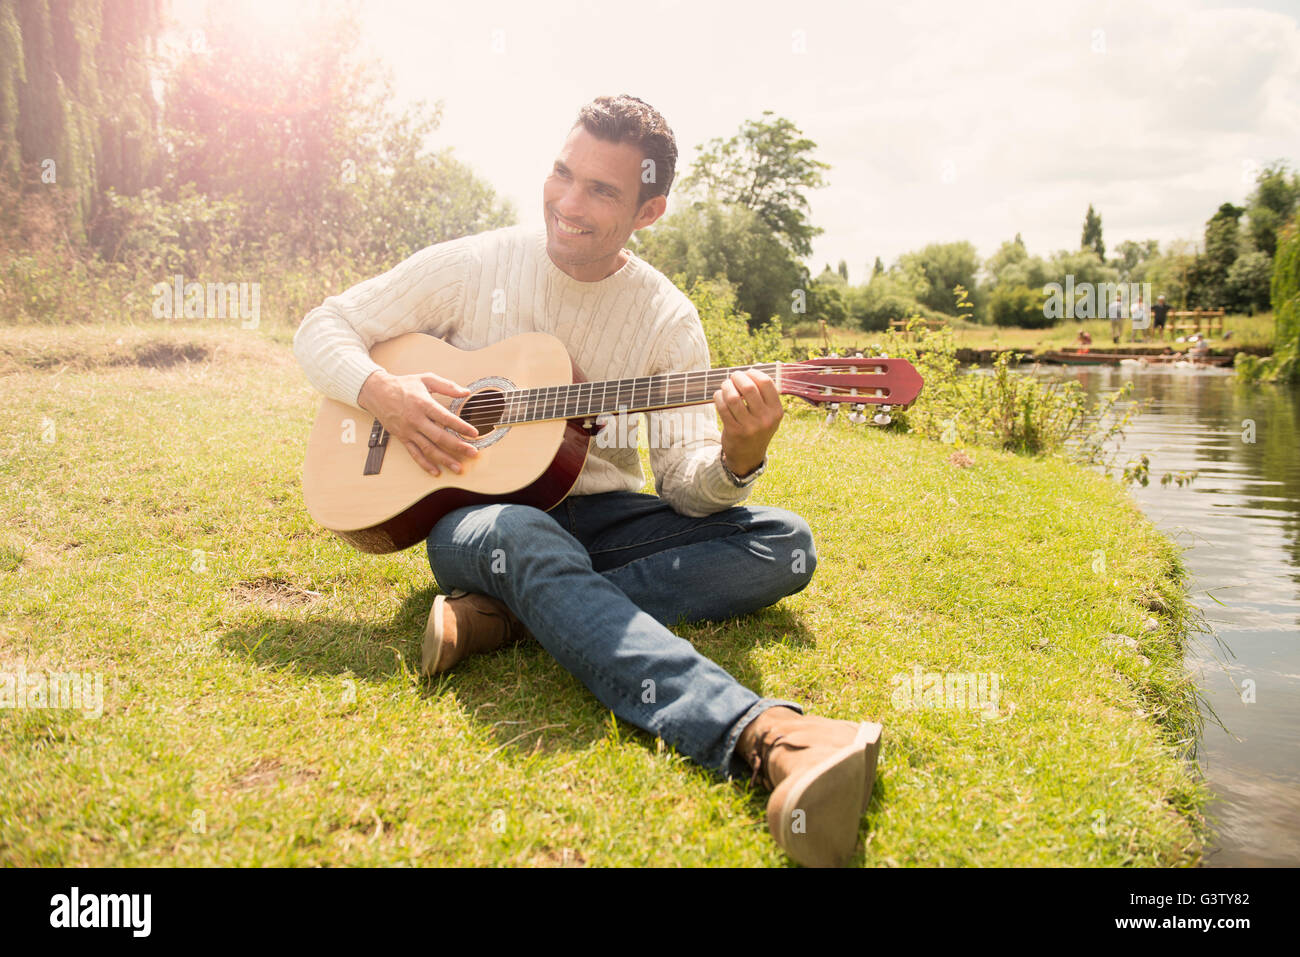 A man playing a guitar by the banks of the River Cam in Cambridge. - Stock Image